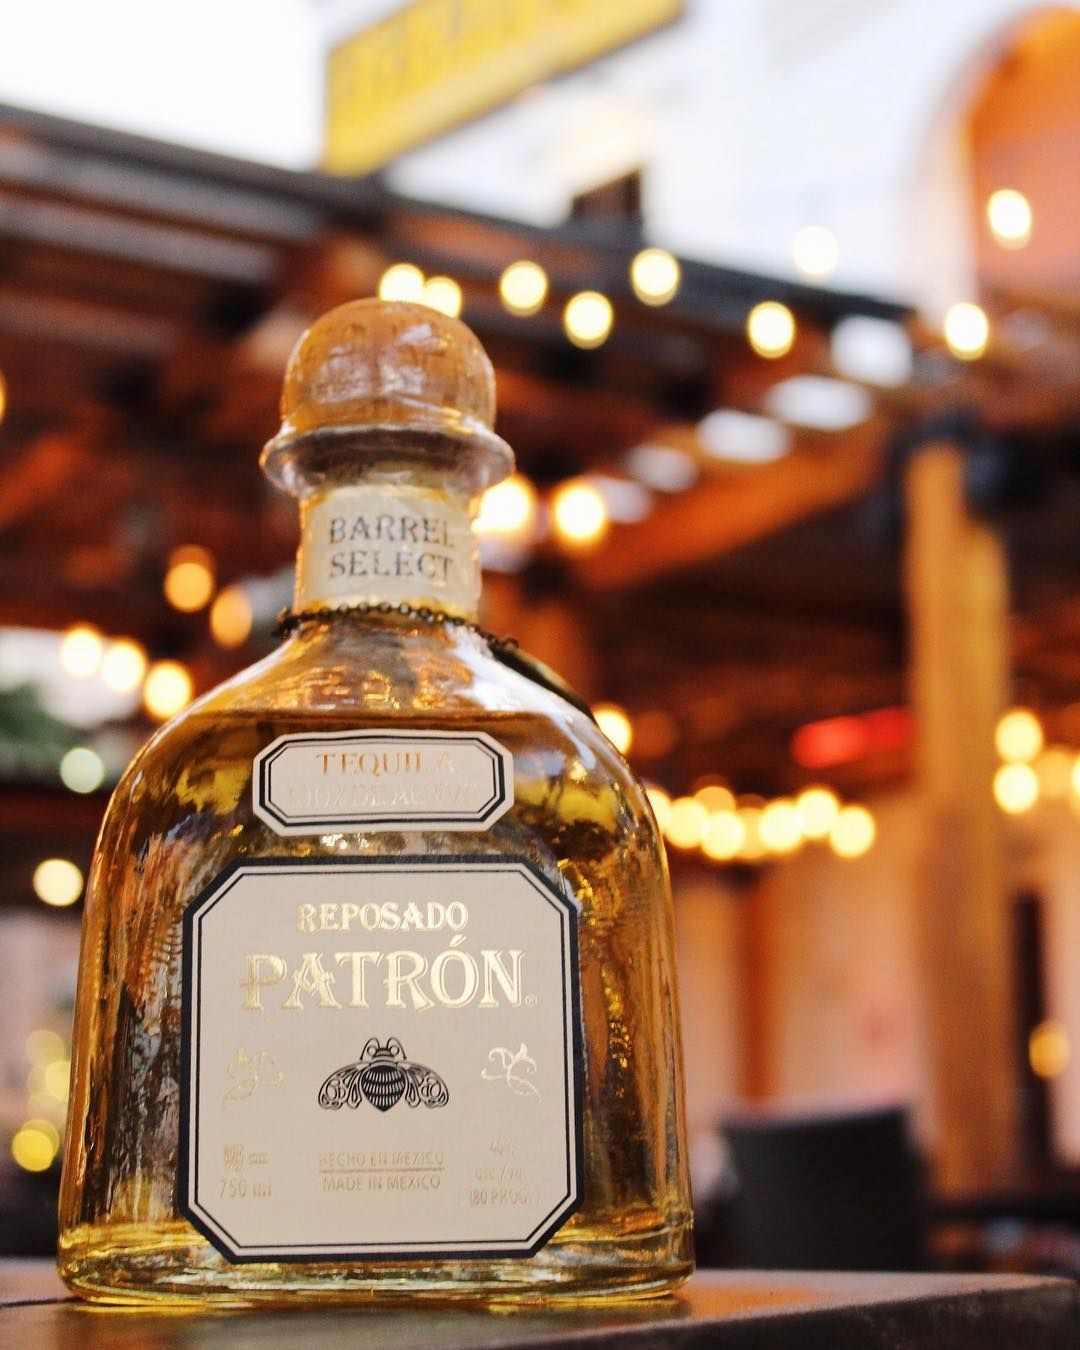 It's almost the weekend.... start your happy hour with the smoothness of Patron. #NotYourAverageMexican